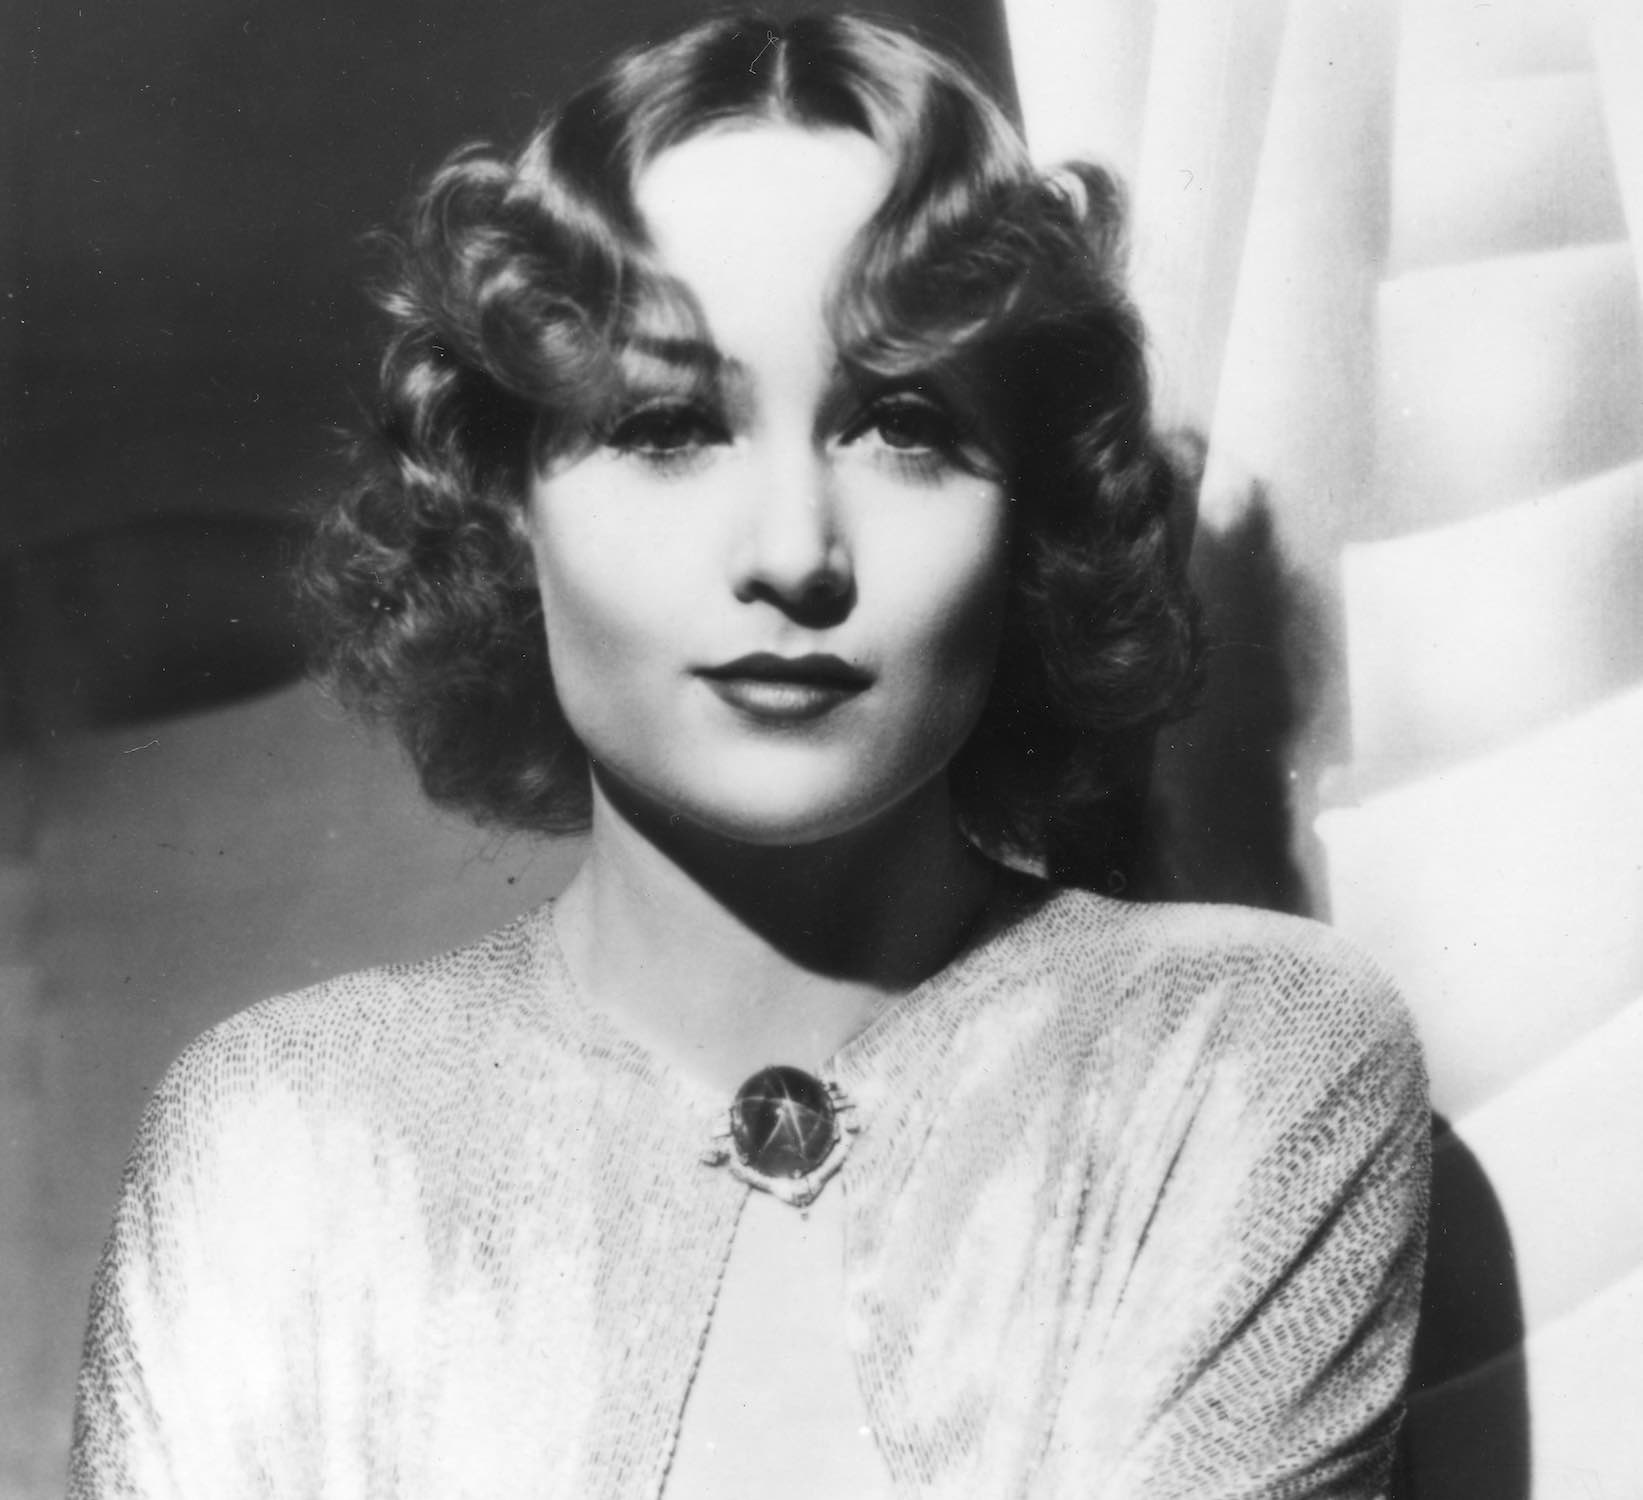 Carole Lombard shown above is wearing her star sapphire and diamond brooch.